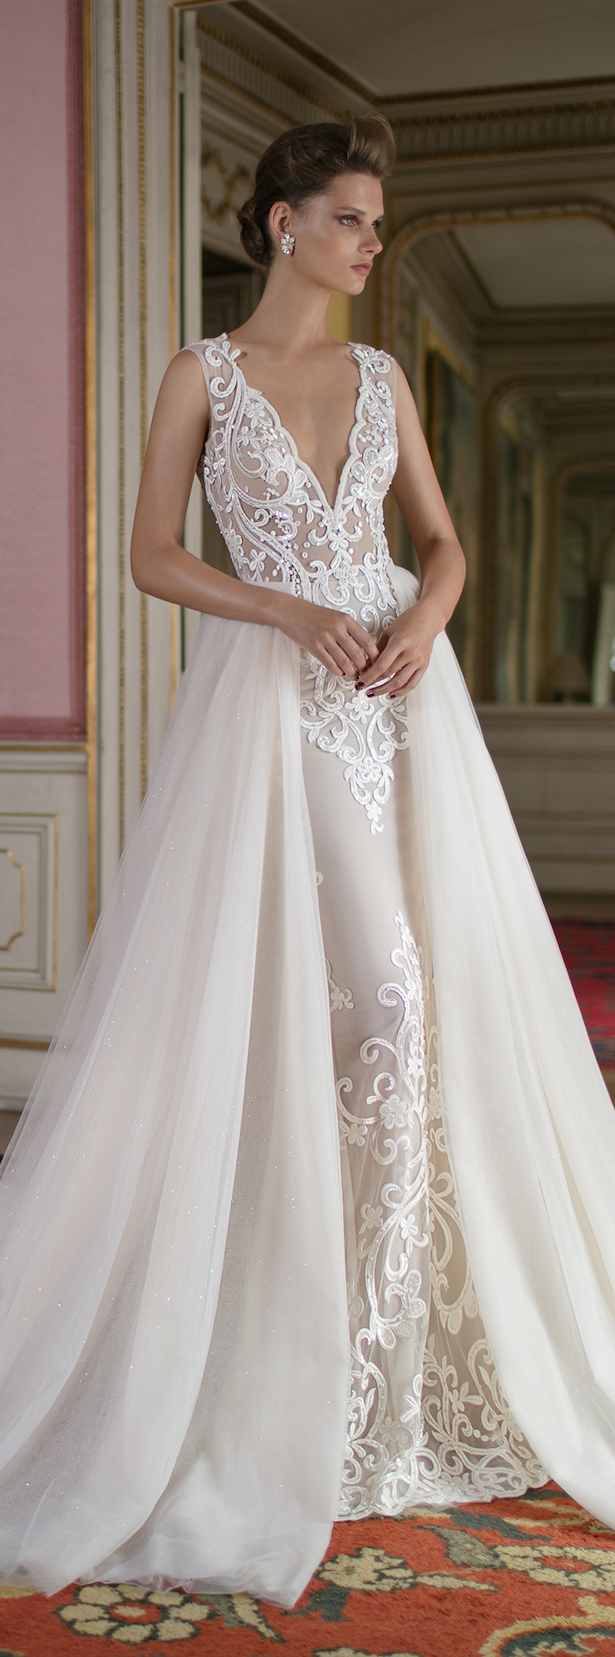 bridal trends wedding dresses with detachable skirts detachable wedding dresses Wedding Dress by Berta Spring Bridal Collection